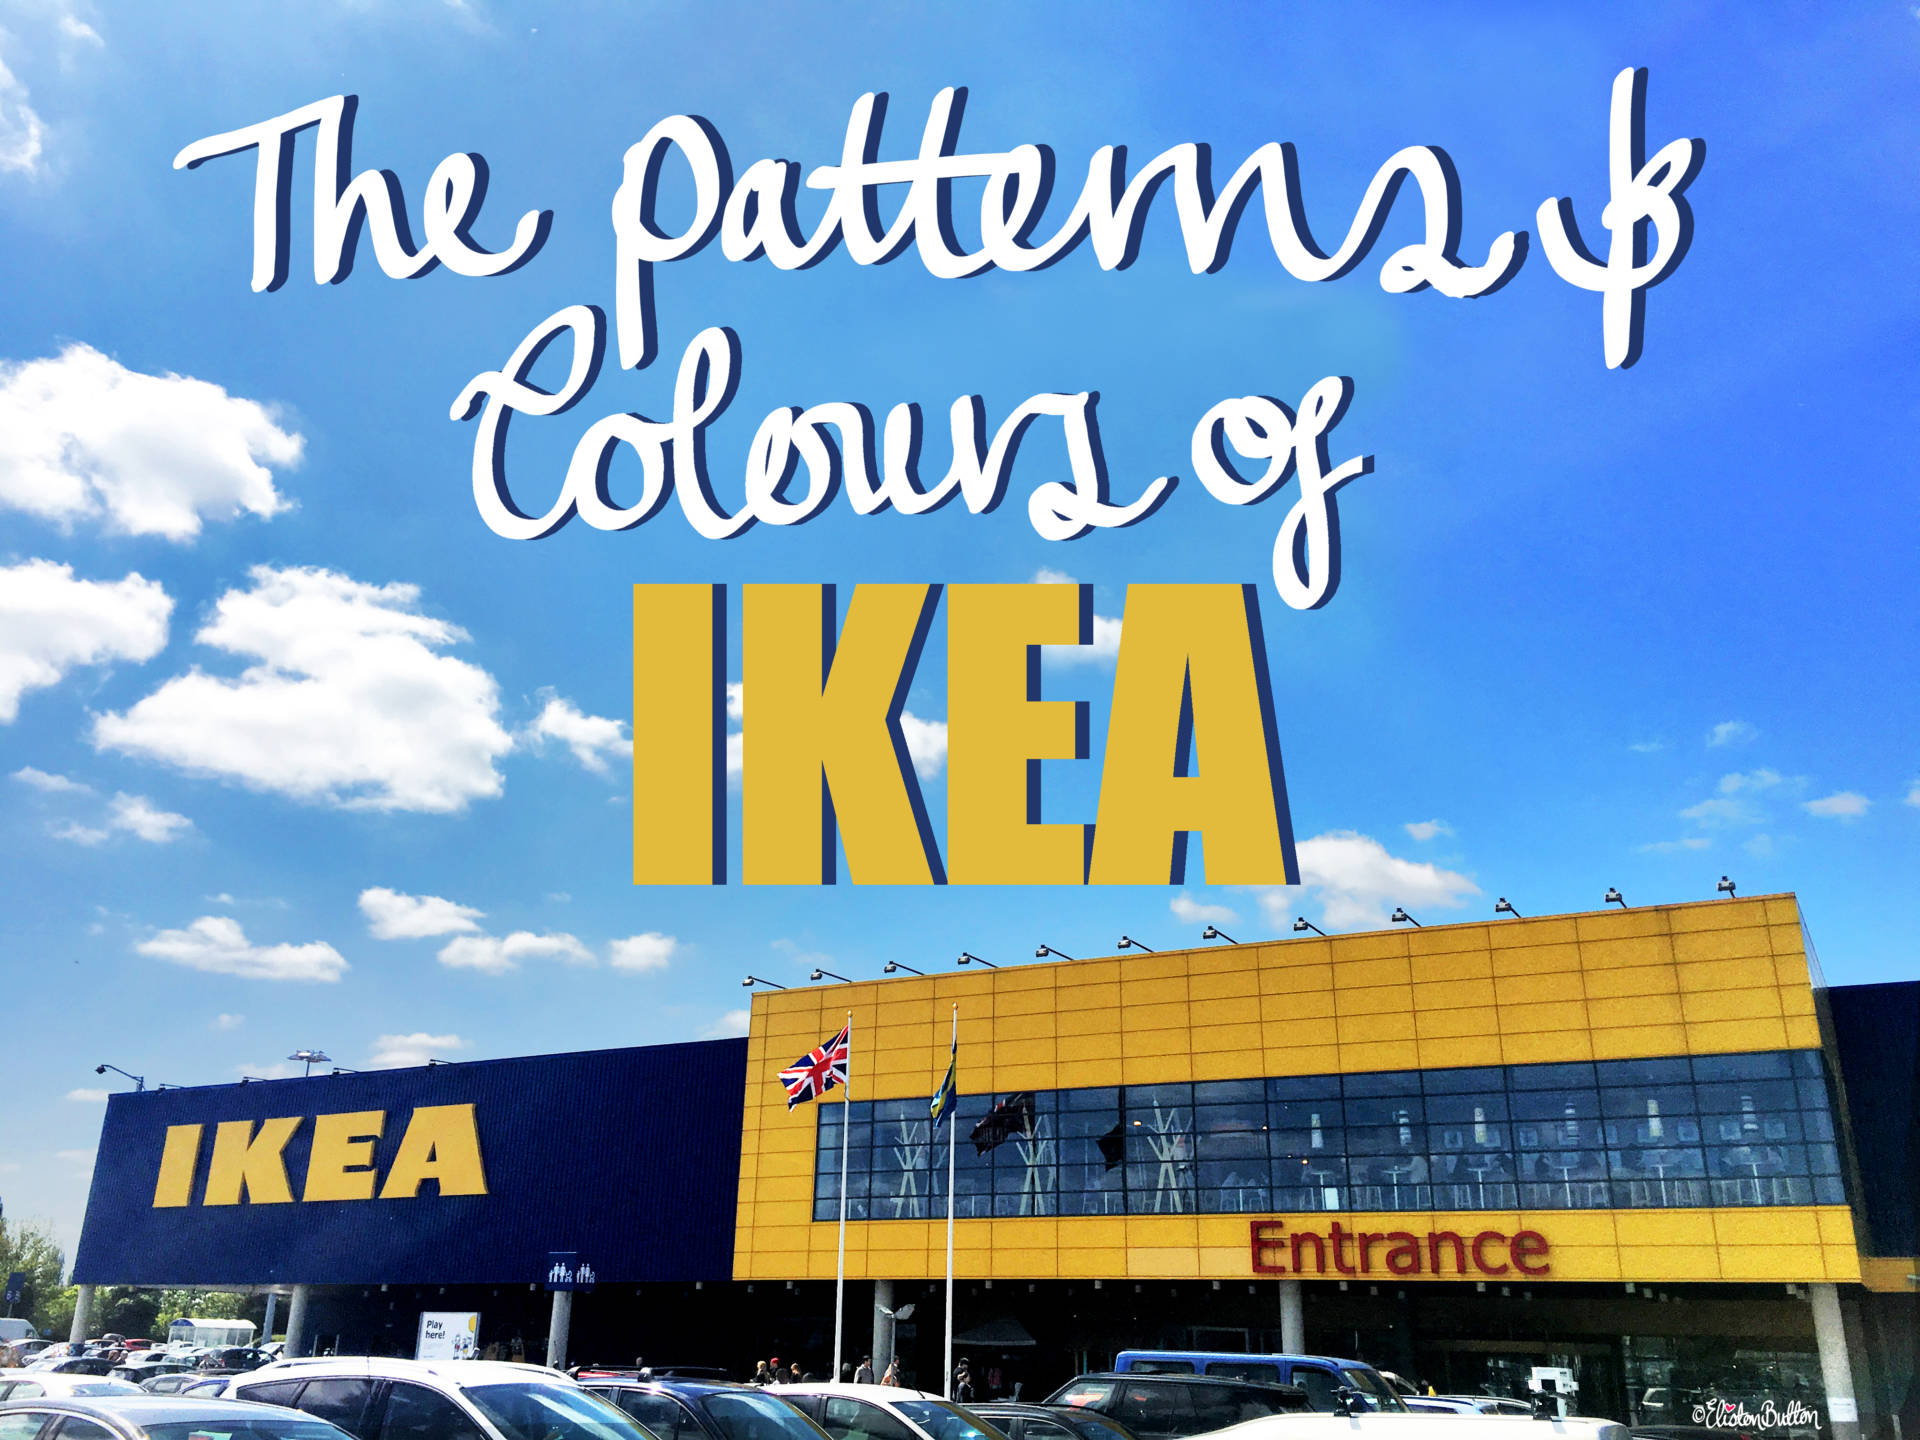 The Patterns and Colours of IKEA at www.elistonbutton.com - Eliston Button - That Crafty Kid – Art, Design, Craft & Adventure.